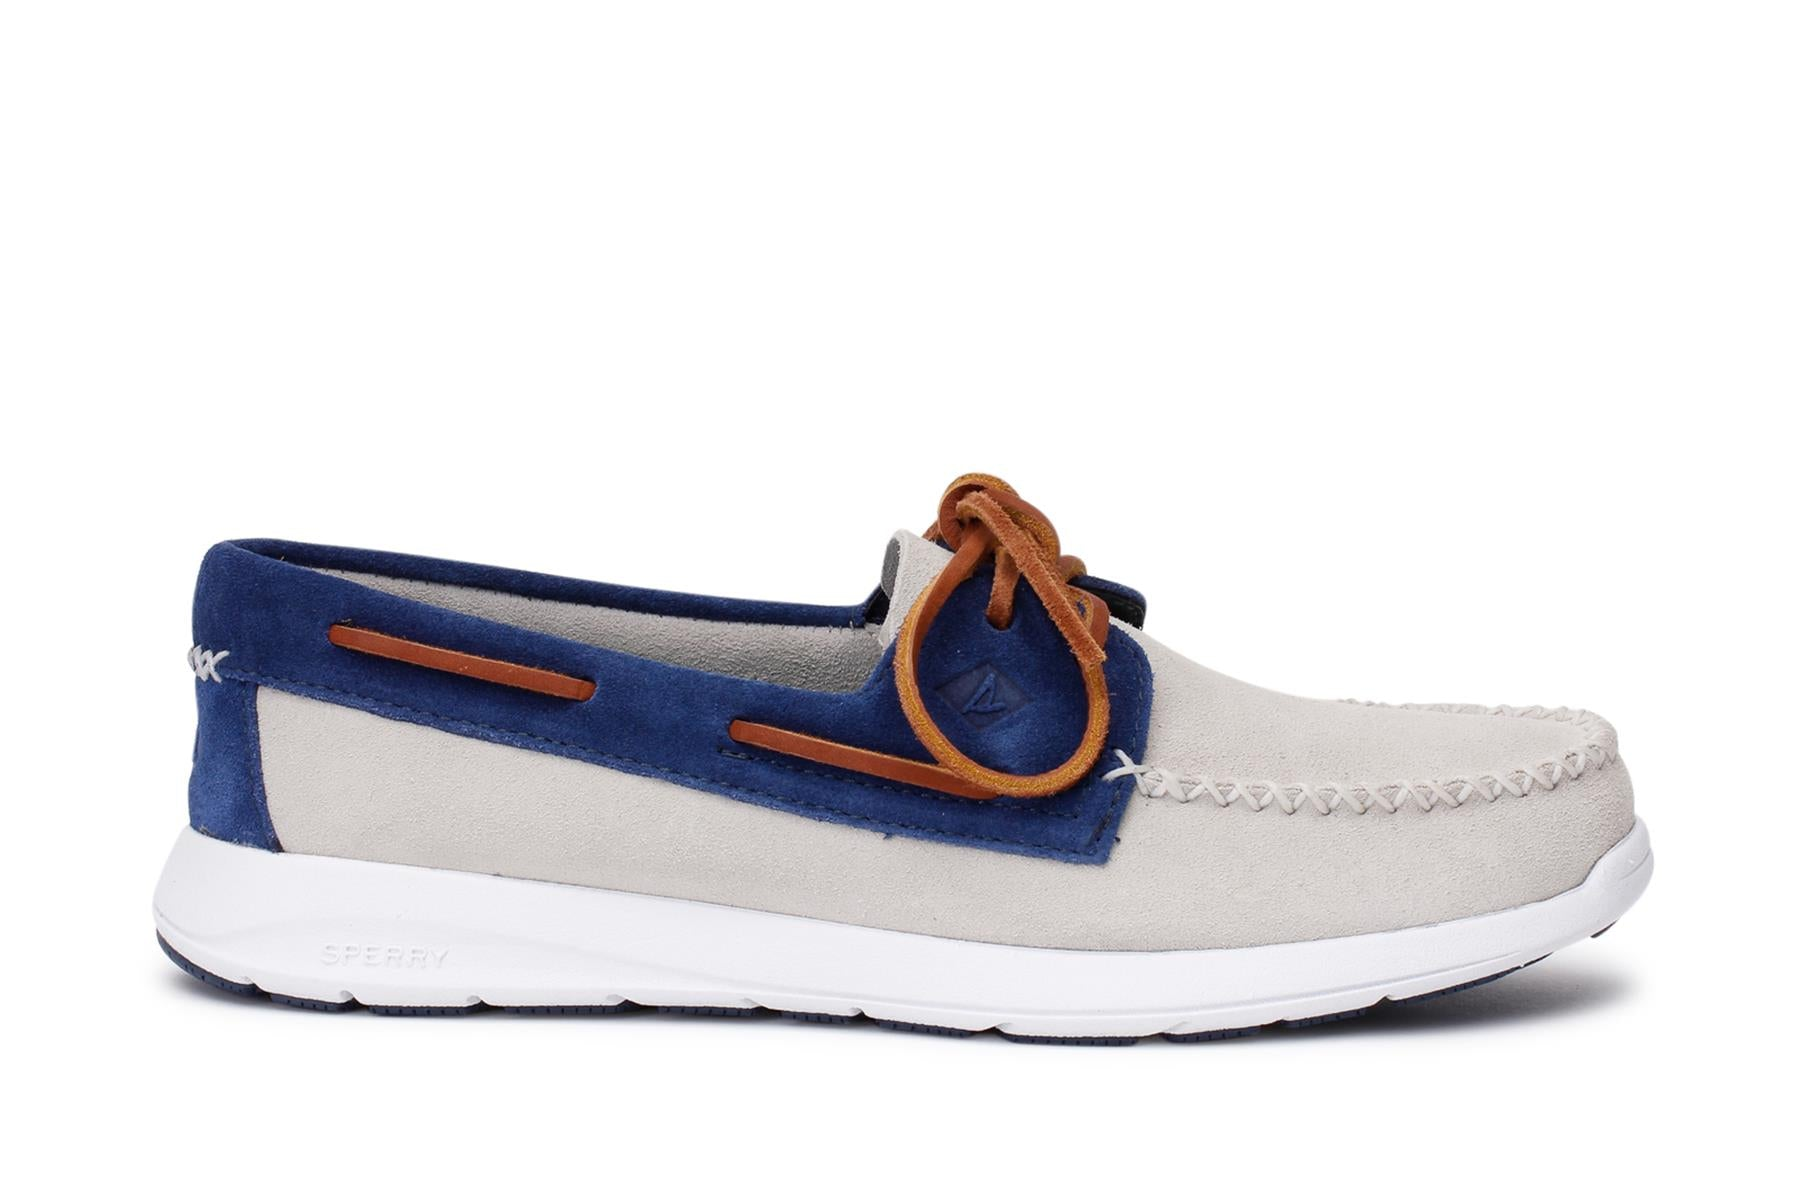 Sojourn Sperry Boat Shoes